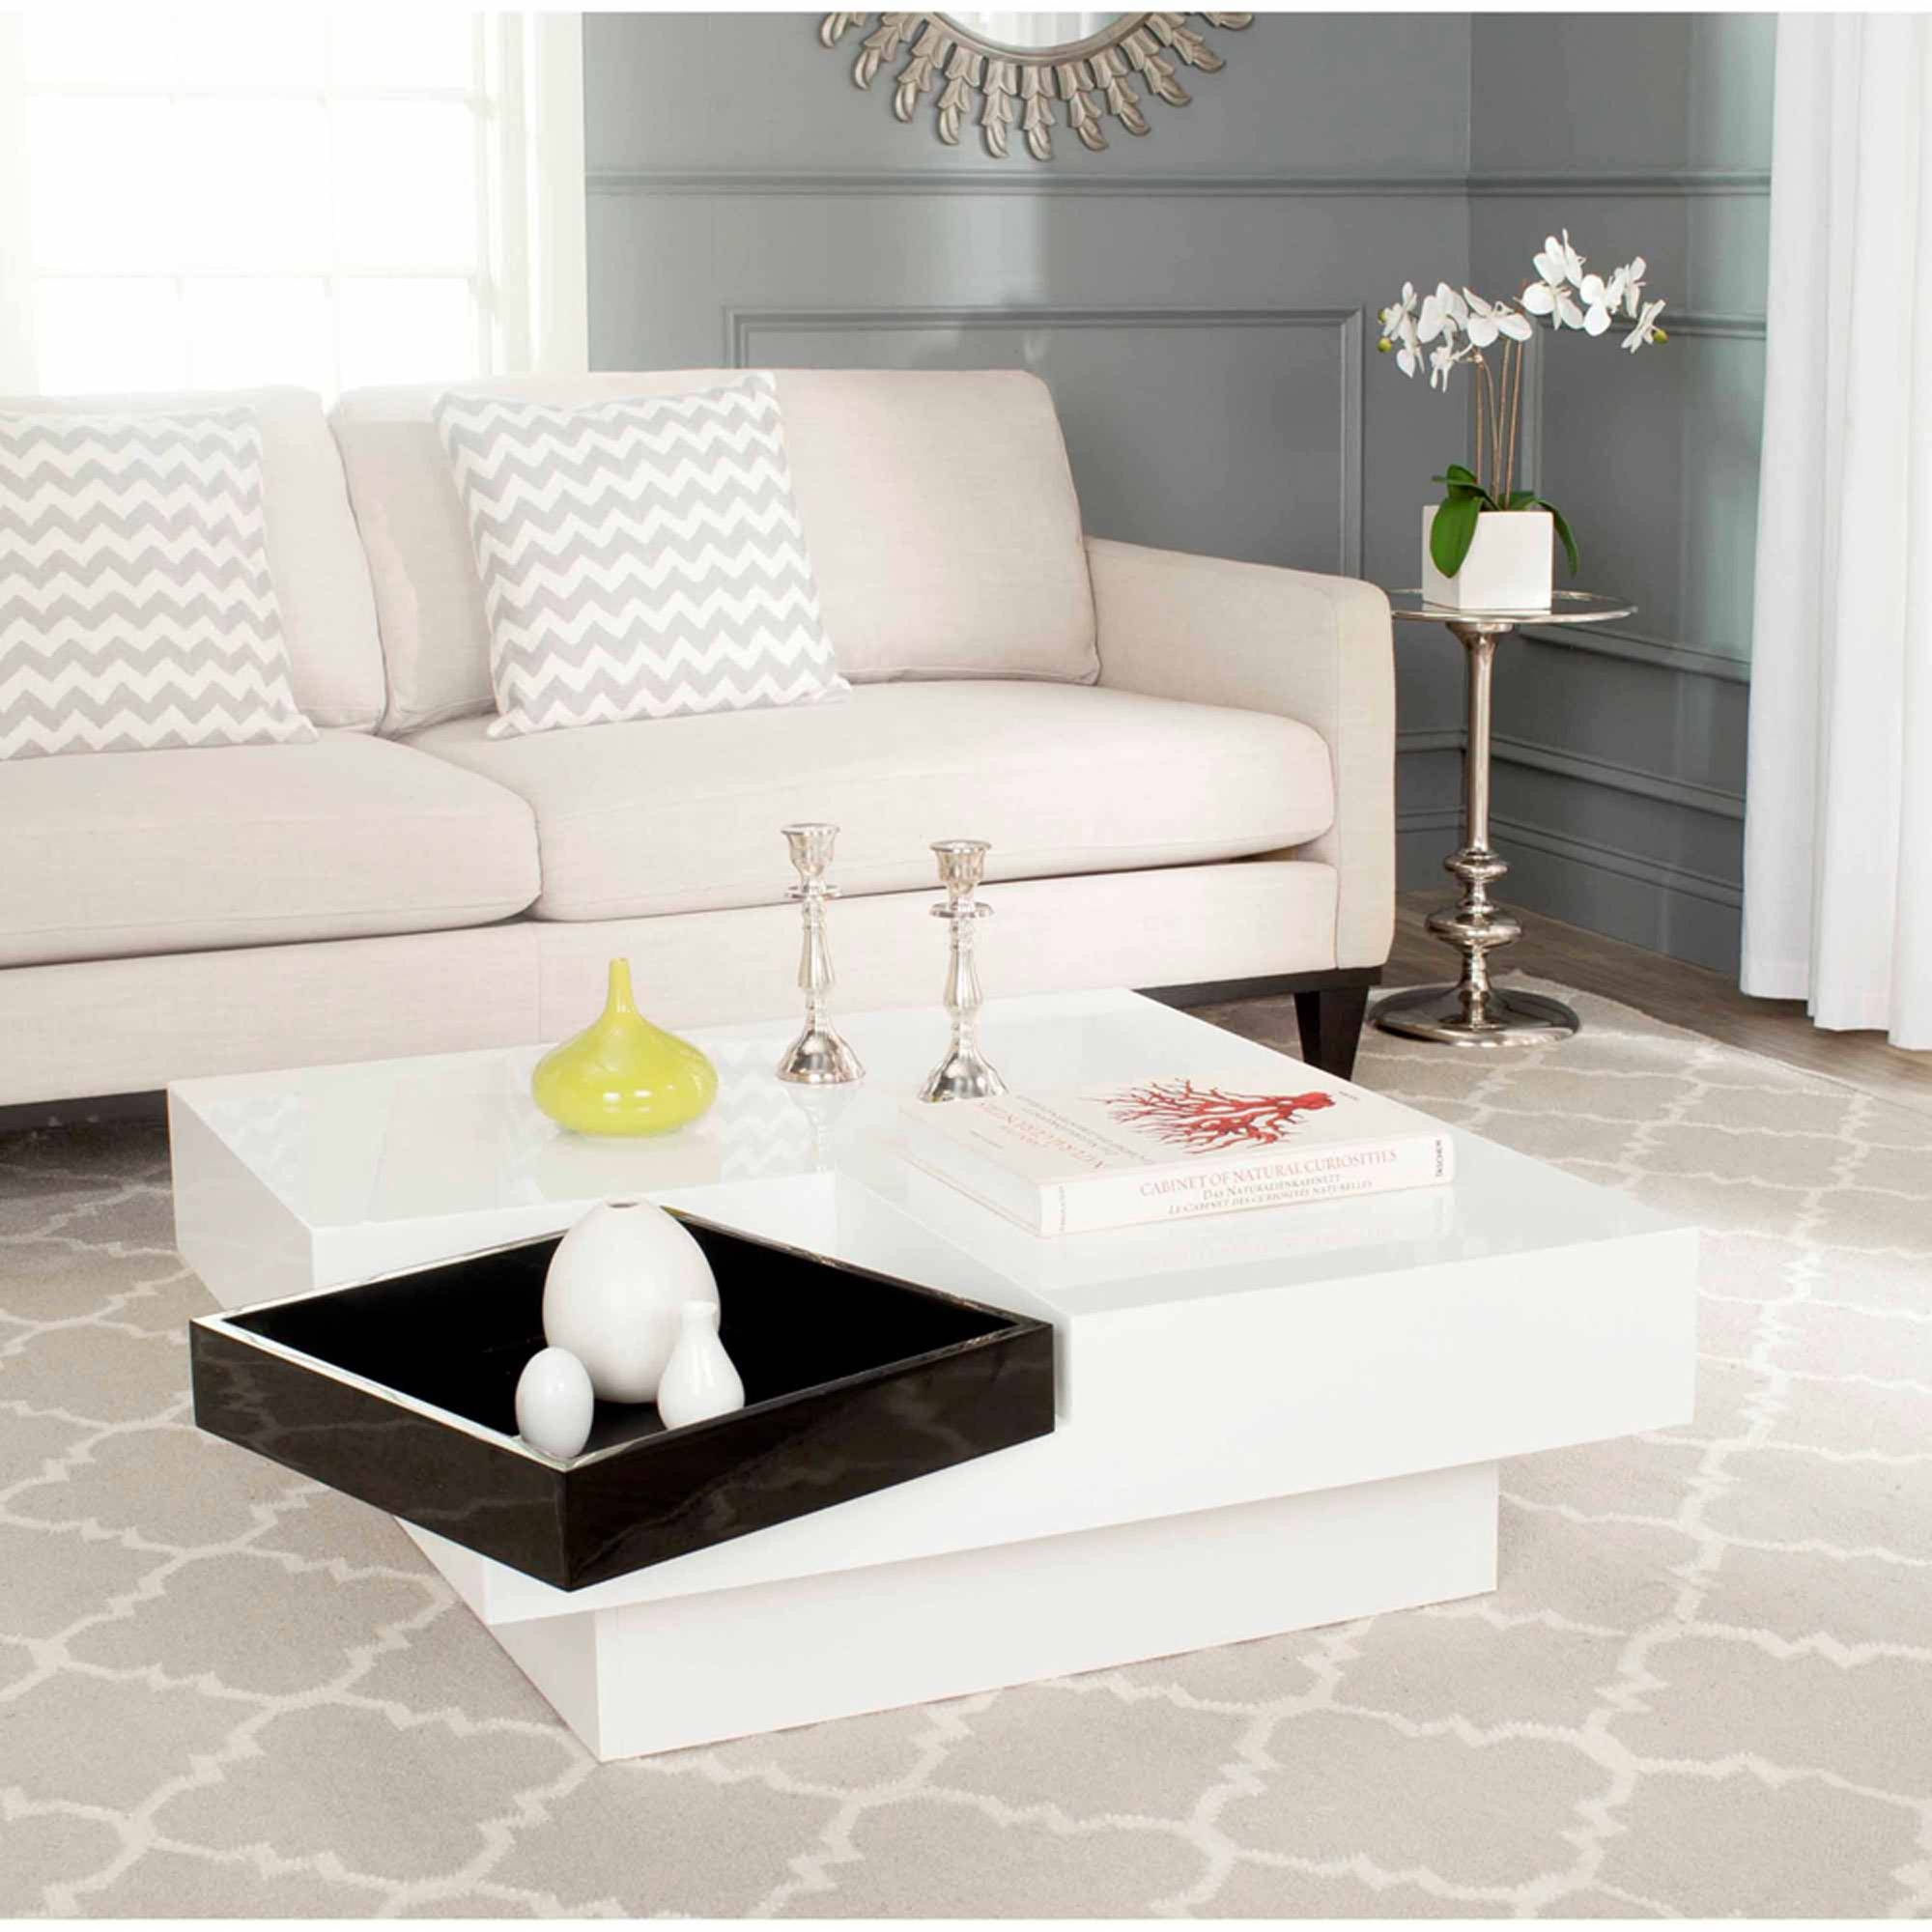 Safavieh Wesley Coffee Table, White And Black - Walmart pertaining to Safavieh Coffee Tables (Image 22 of 30)